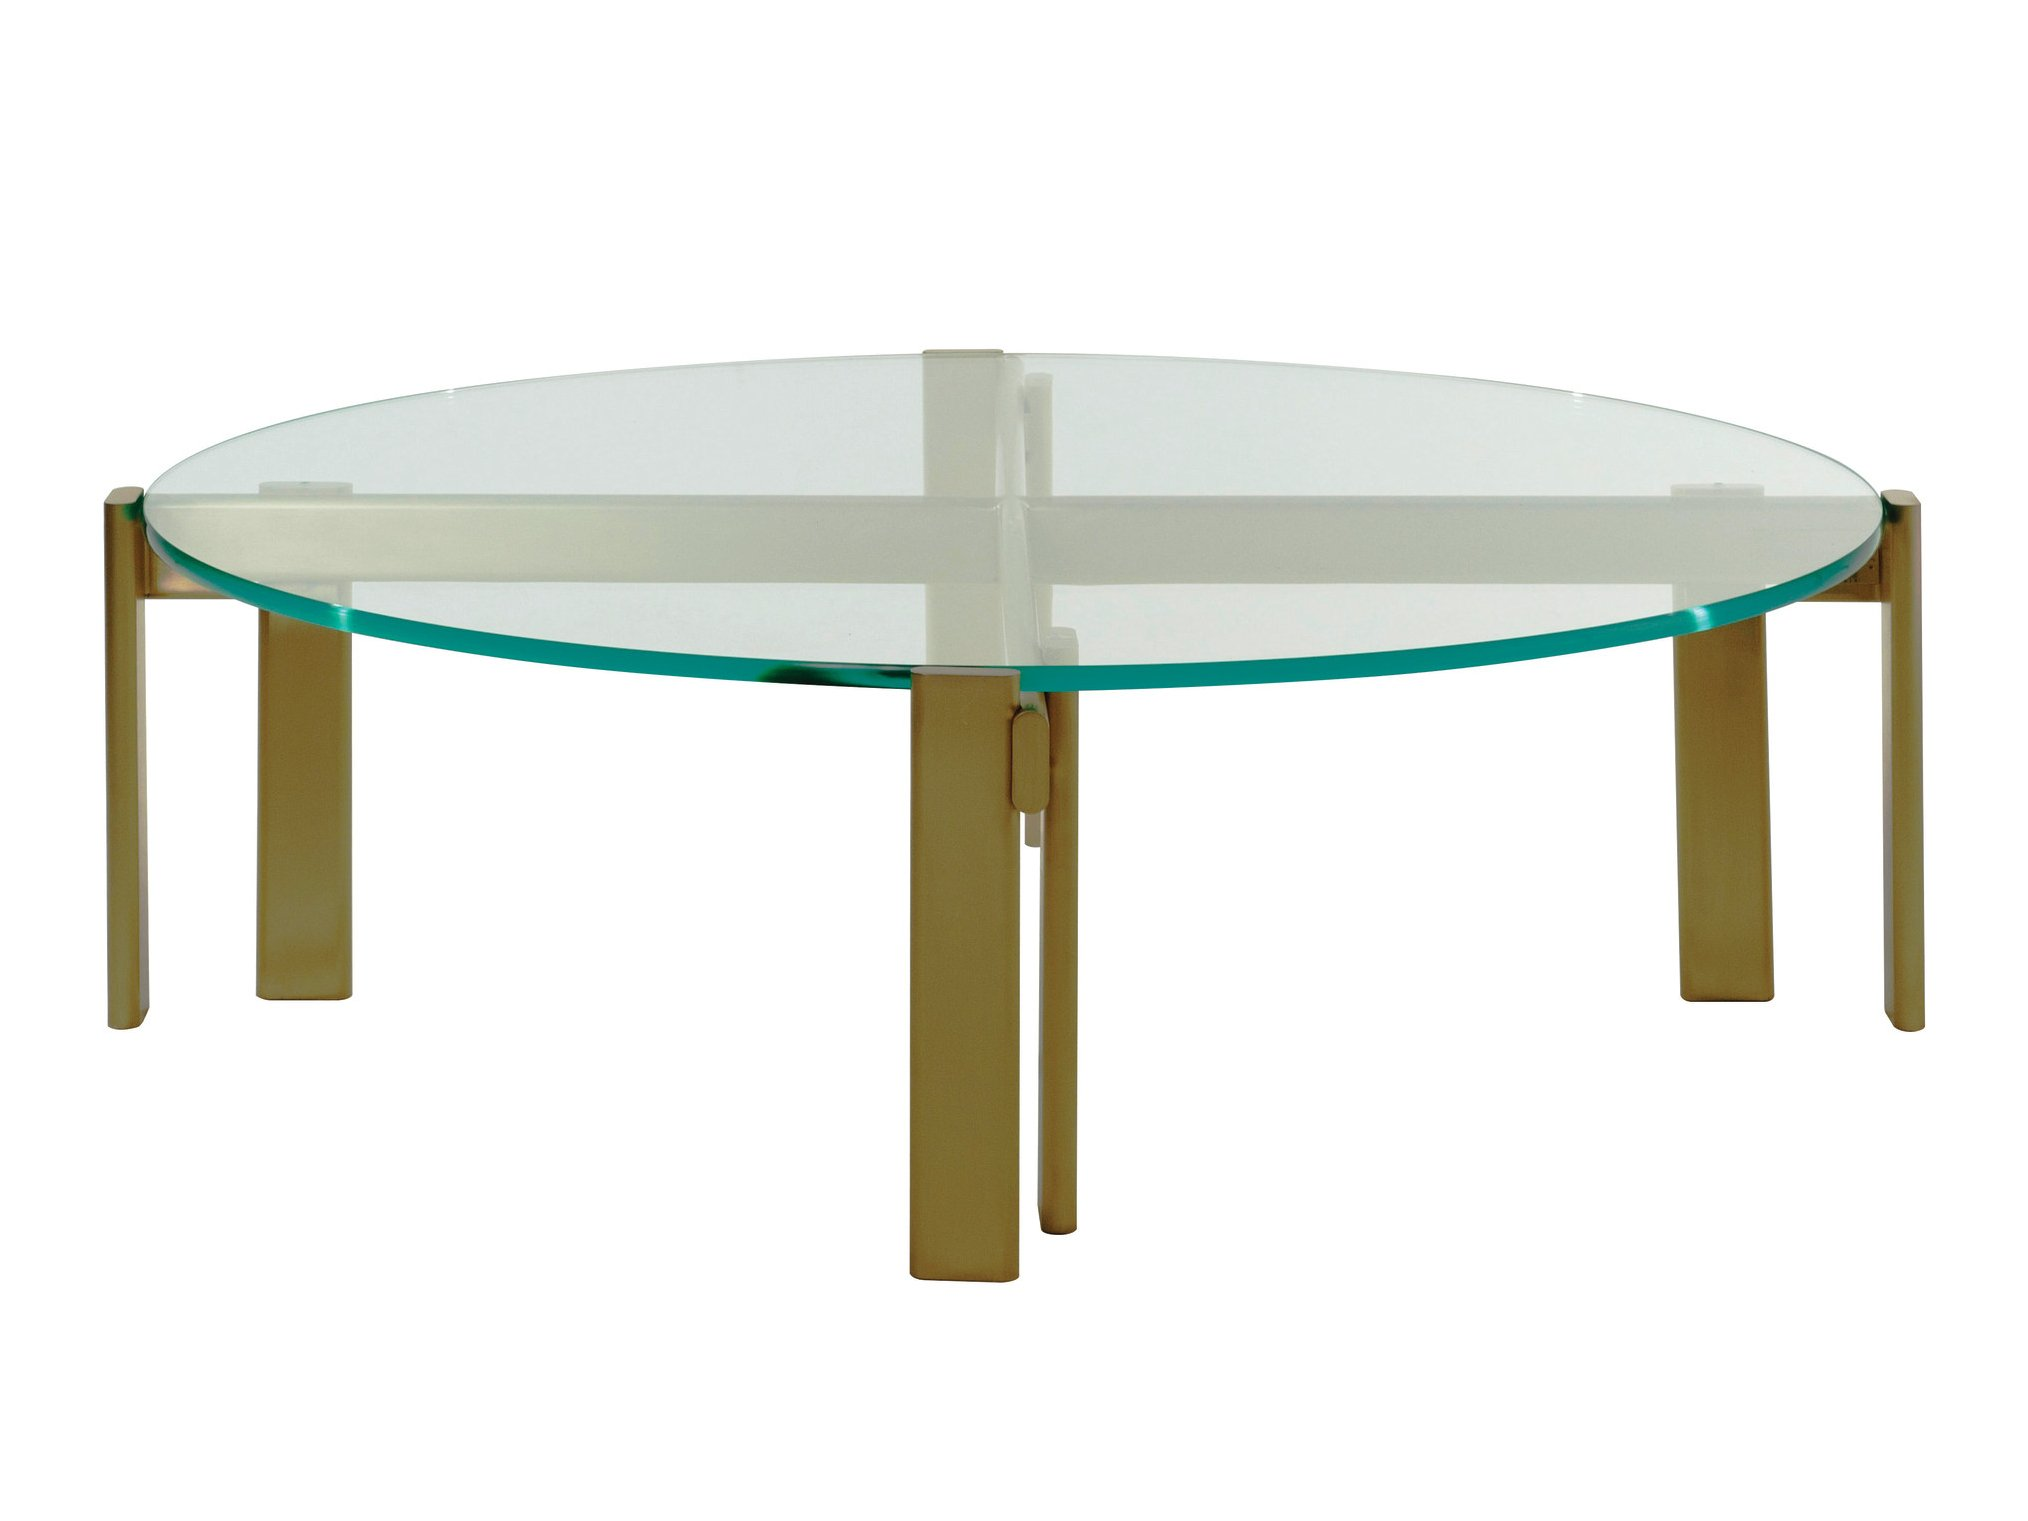 paris-paname-coffee-table-roche-bobois-307923-rel7c903c7f Frais De Table 4 Chaises